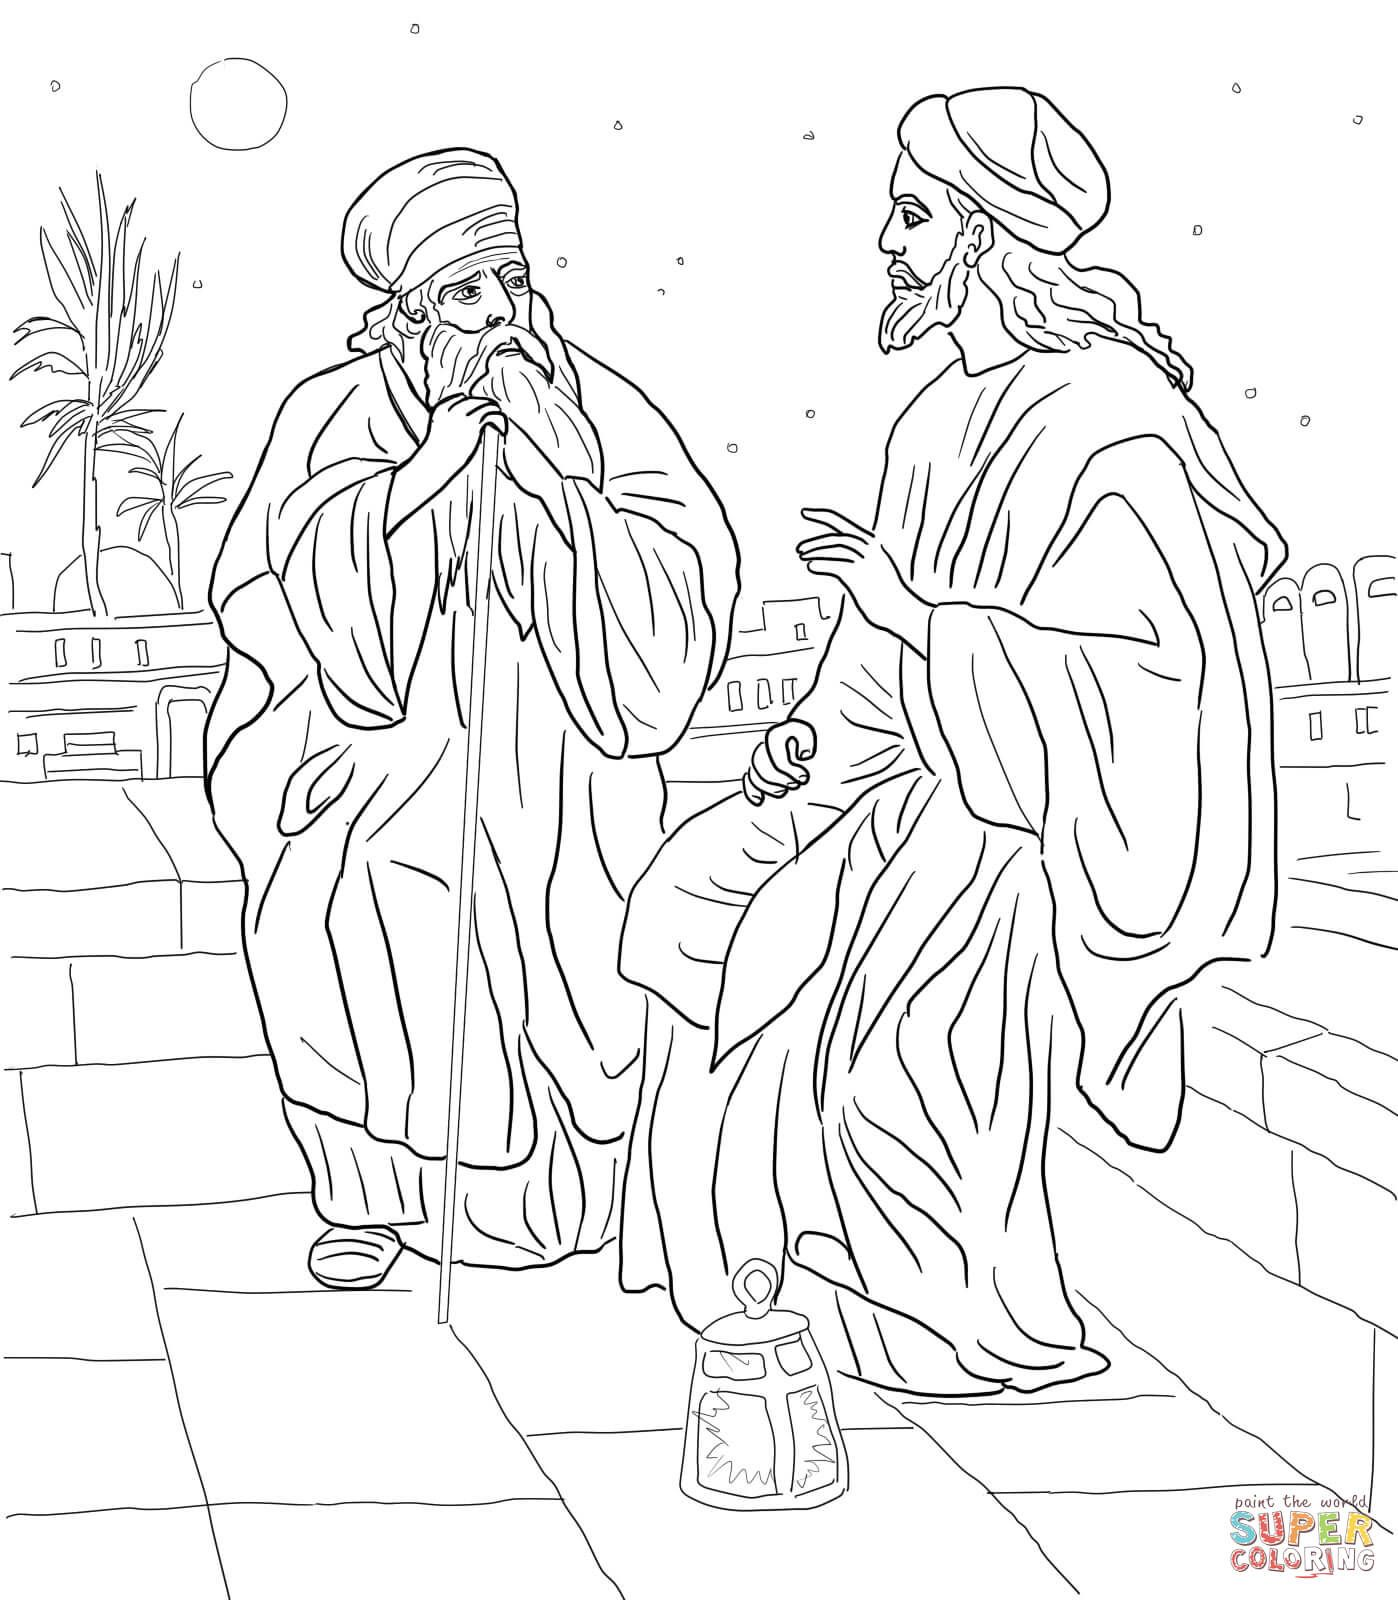 Jesus And Nicodemus Coloring Page Jpg 1398 1600 Bible Coloring Pages Coloring Pages Jesus Coloring Pages